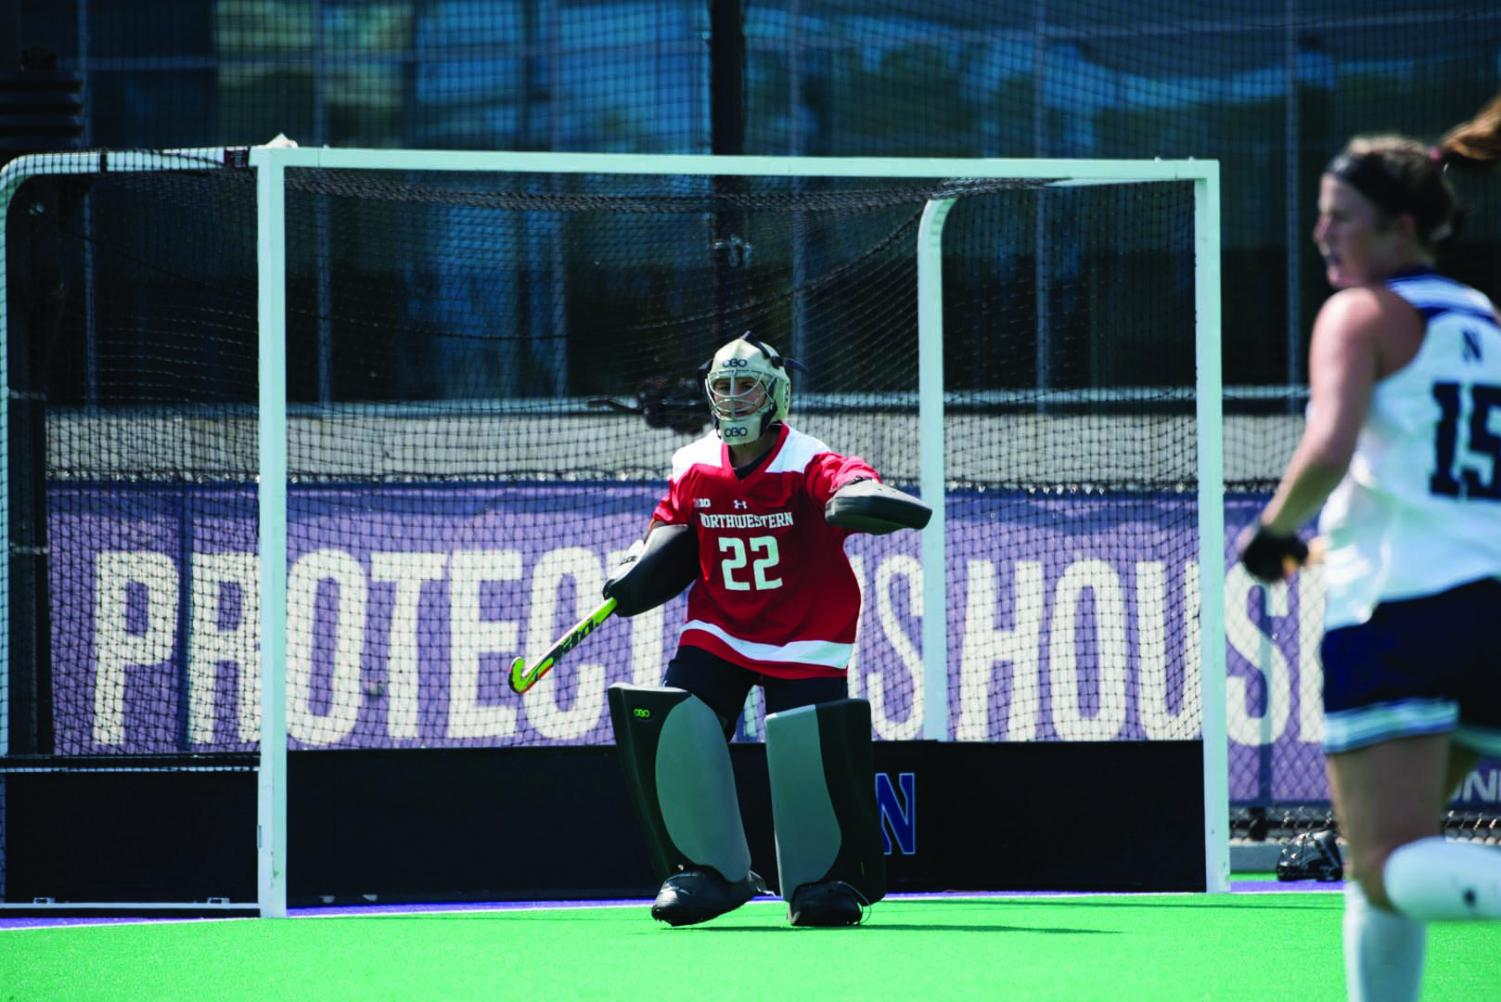 Annie Kalfas directs her defenders. The junior goaltender said the Wildcats will have last year's losses to Michigan on their minds when they play the Wolverines on Friday.